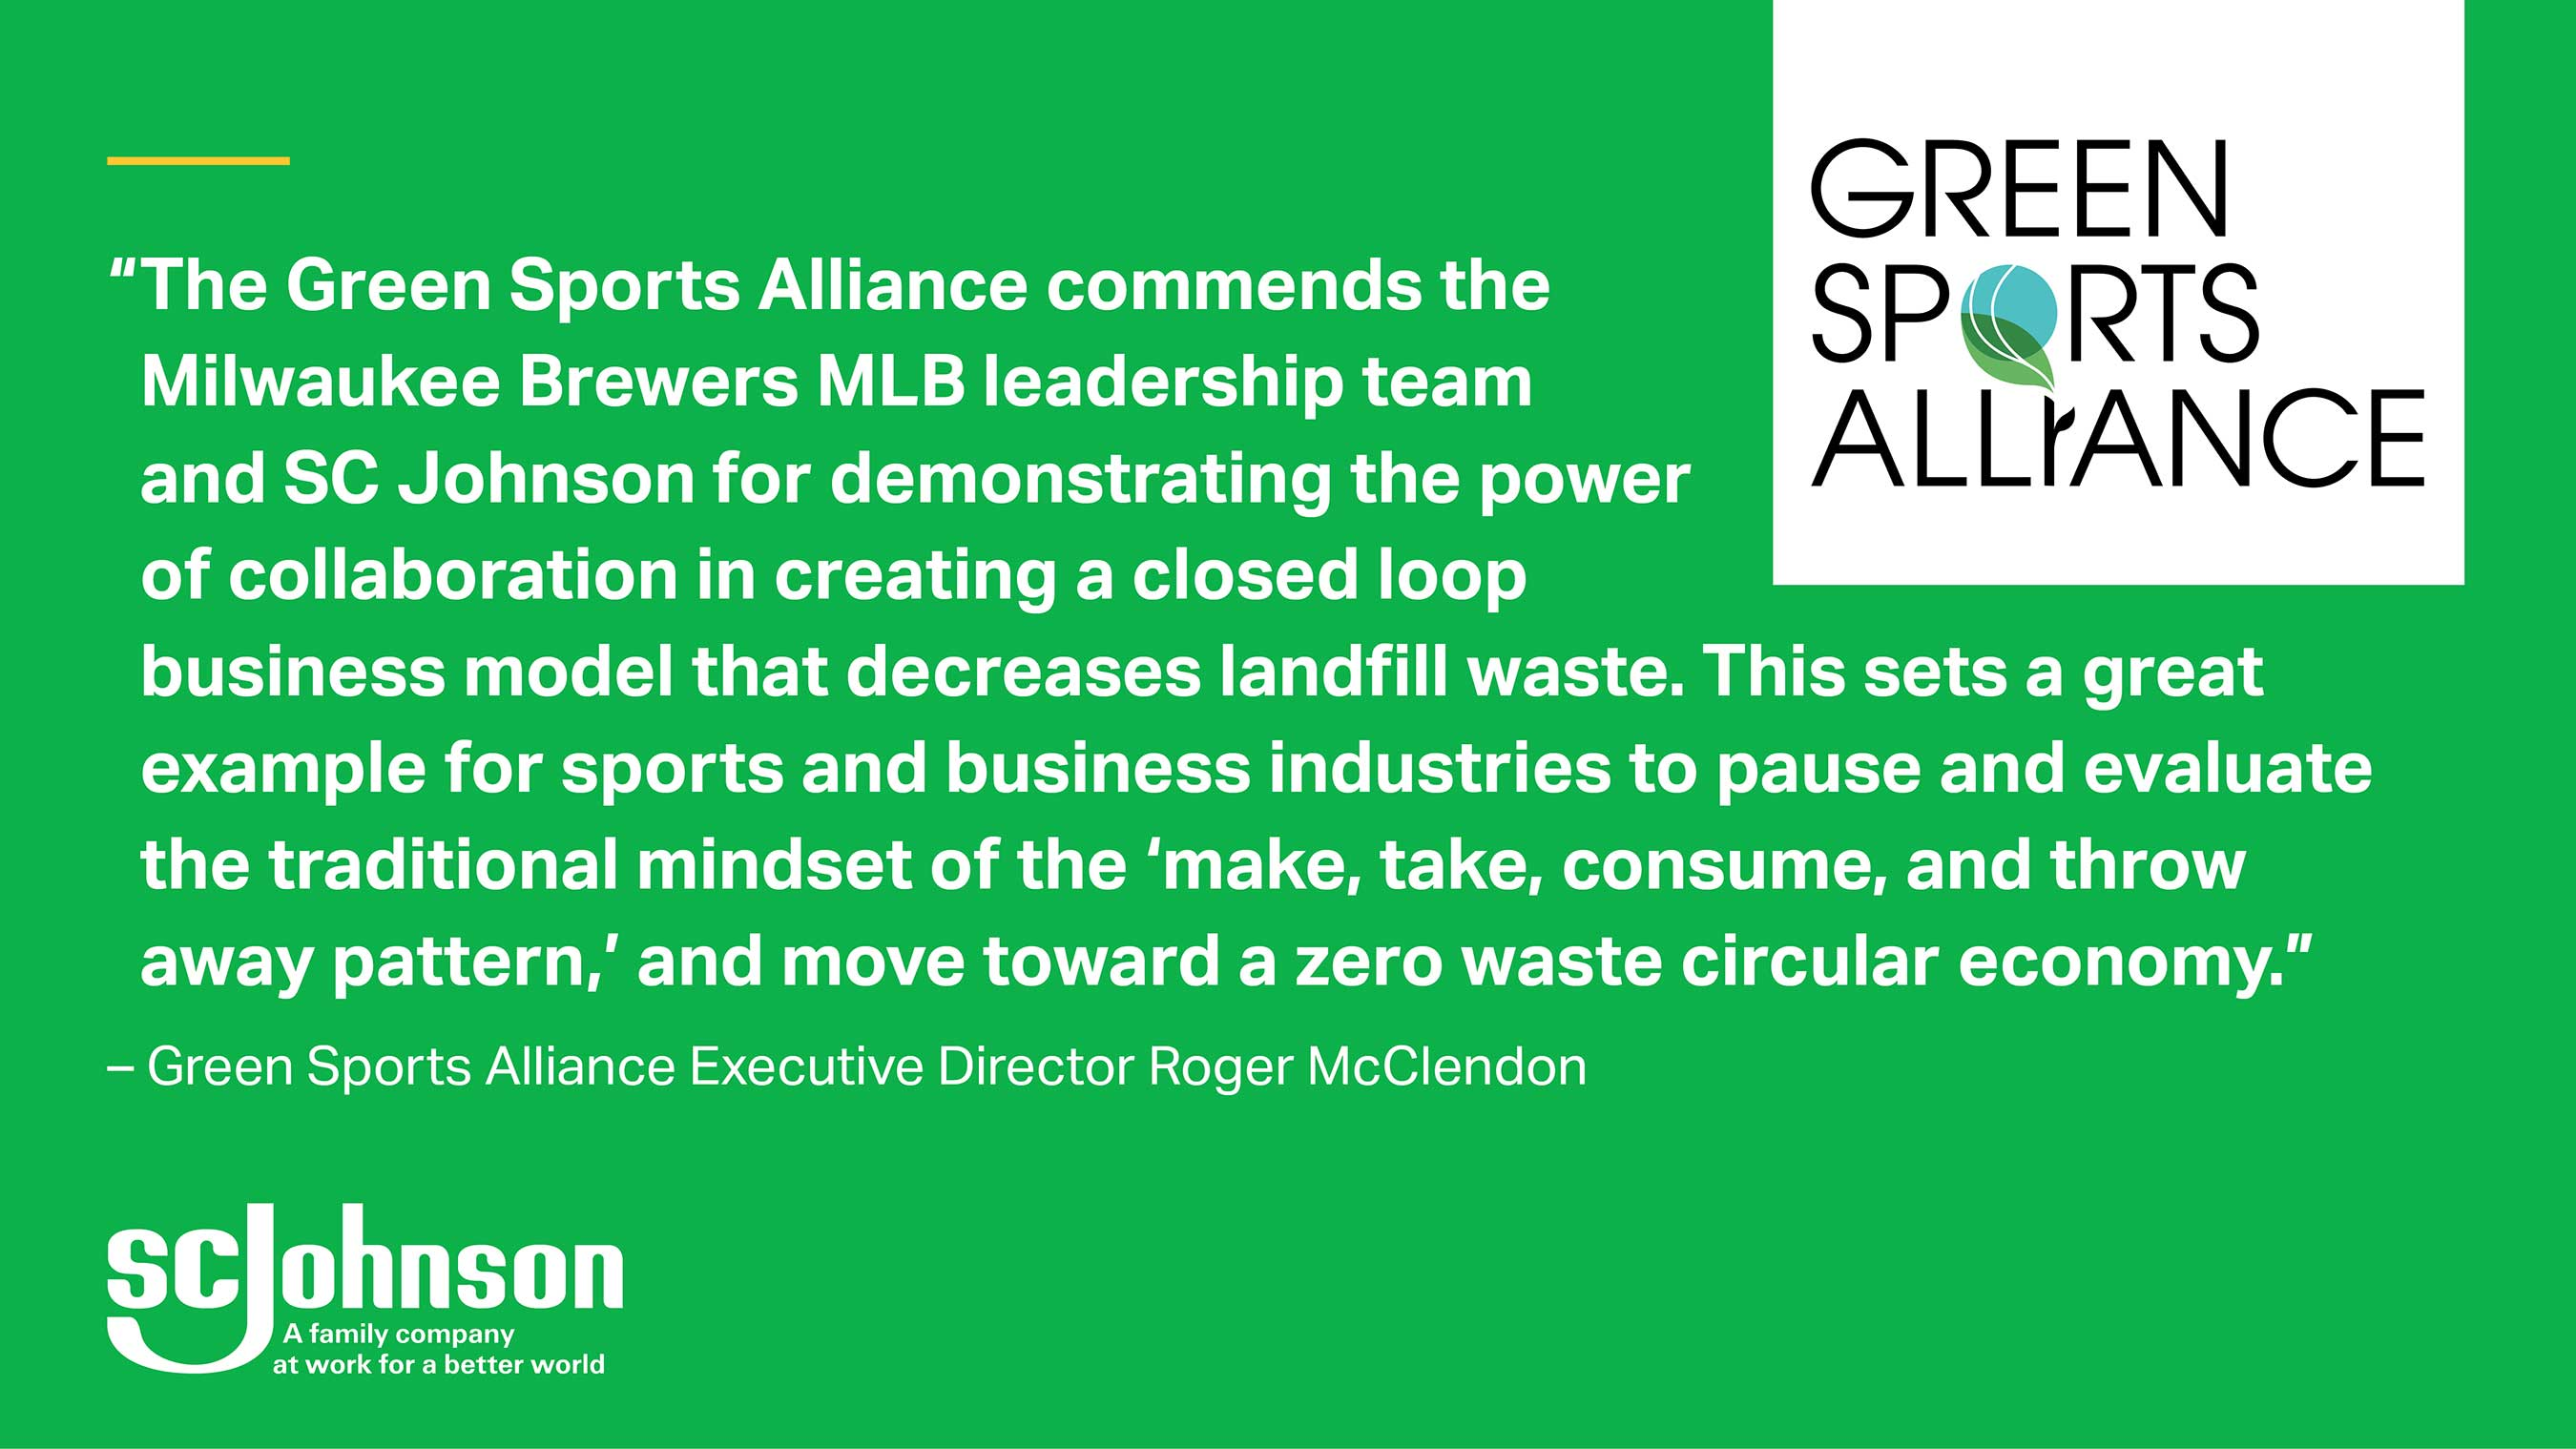 The Green Sports Alliance supports professional sports recycling and sustainability efforts.